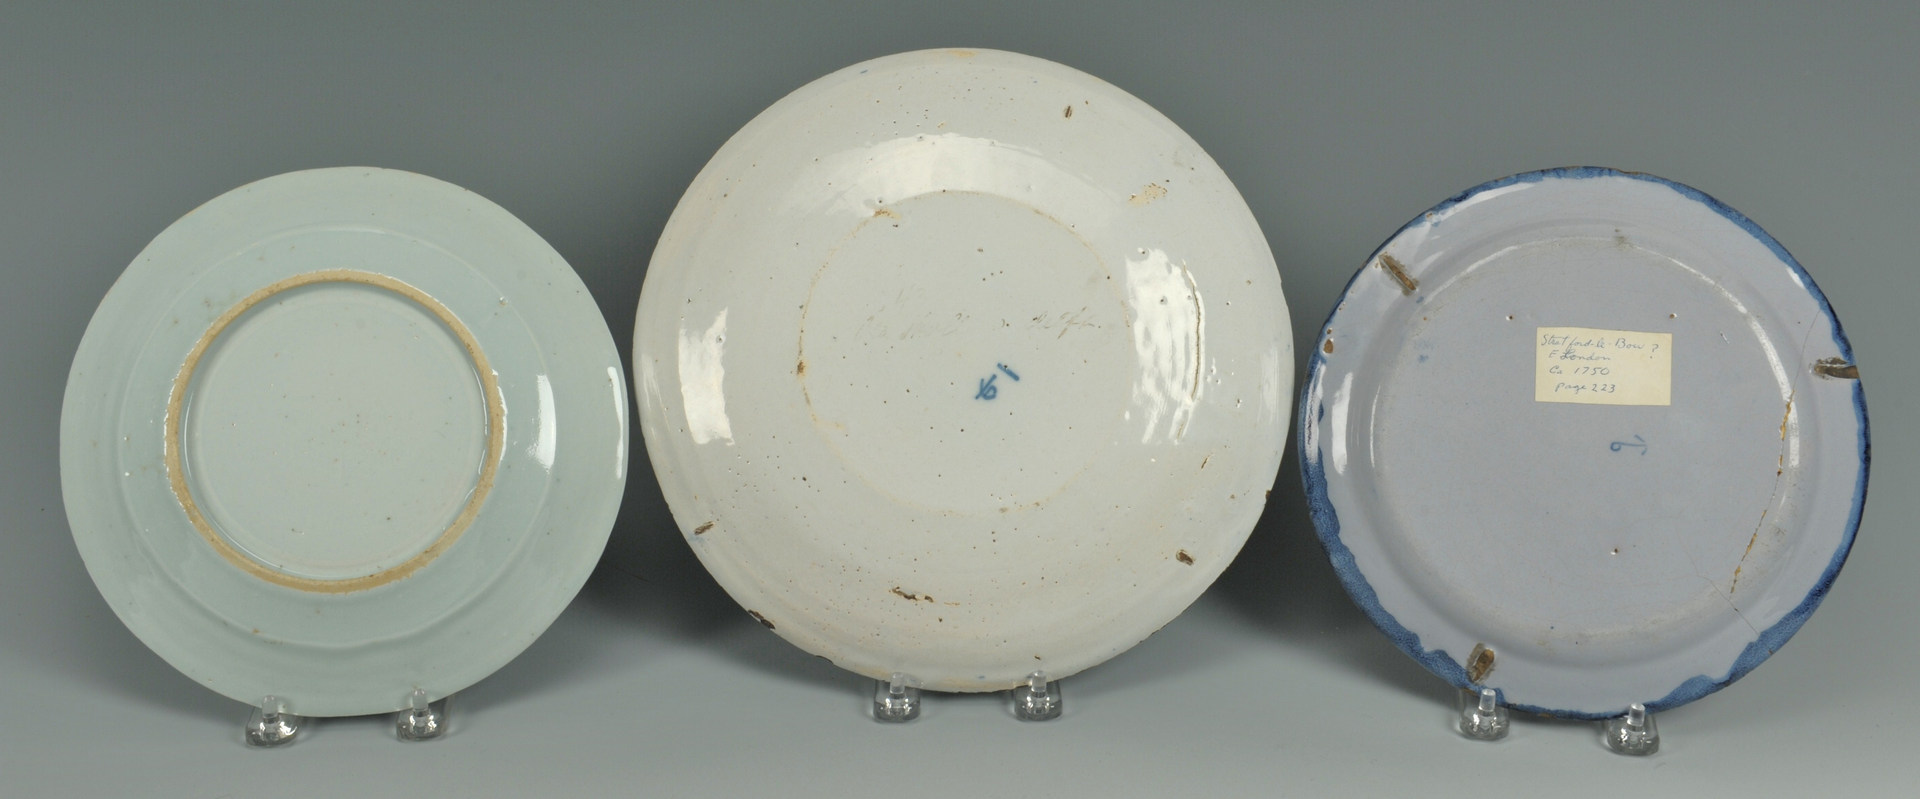 Lot 484: 5 Blue & White Pottery Items